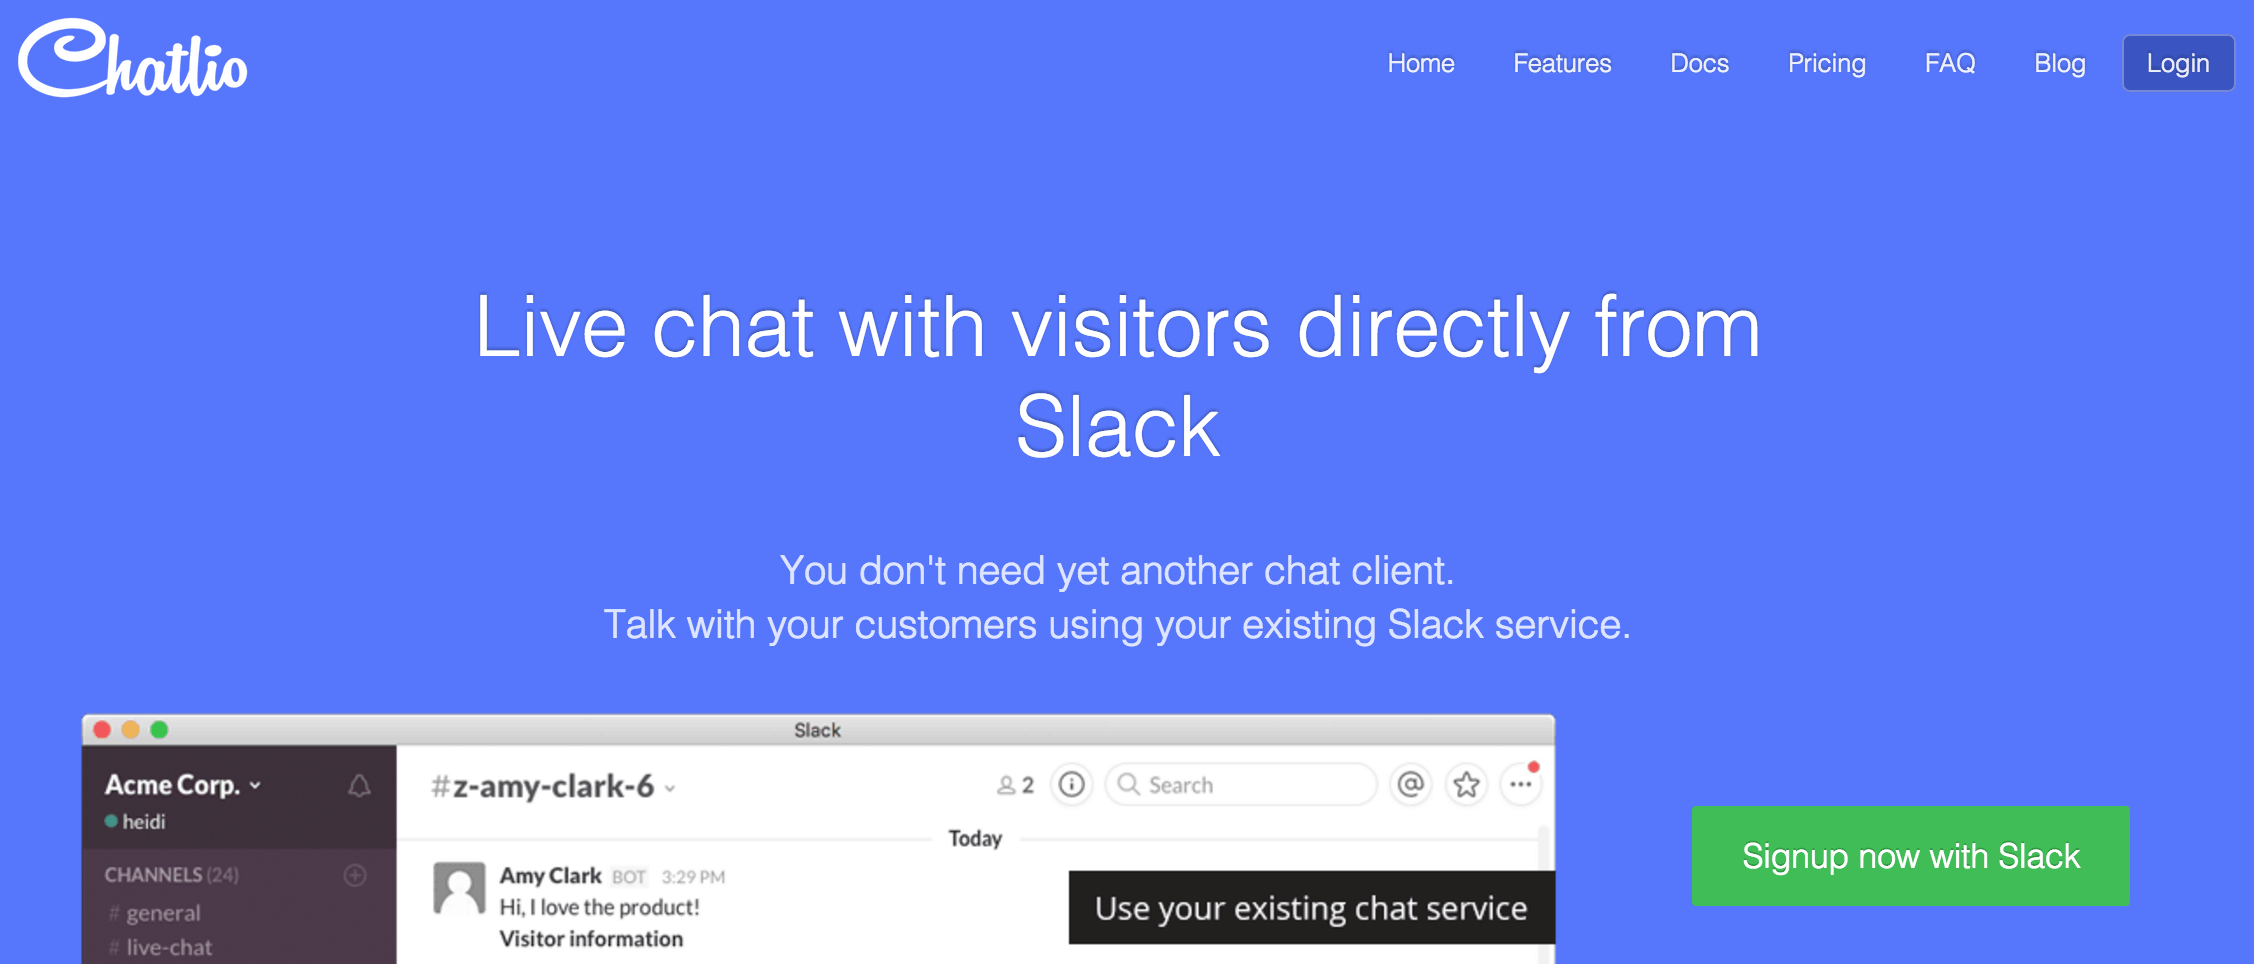 A screenshot of the Chatlio homepage.